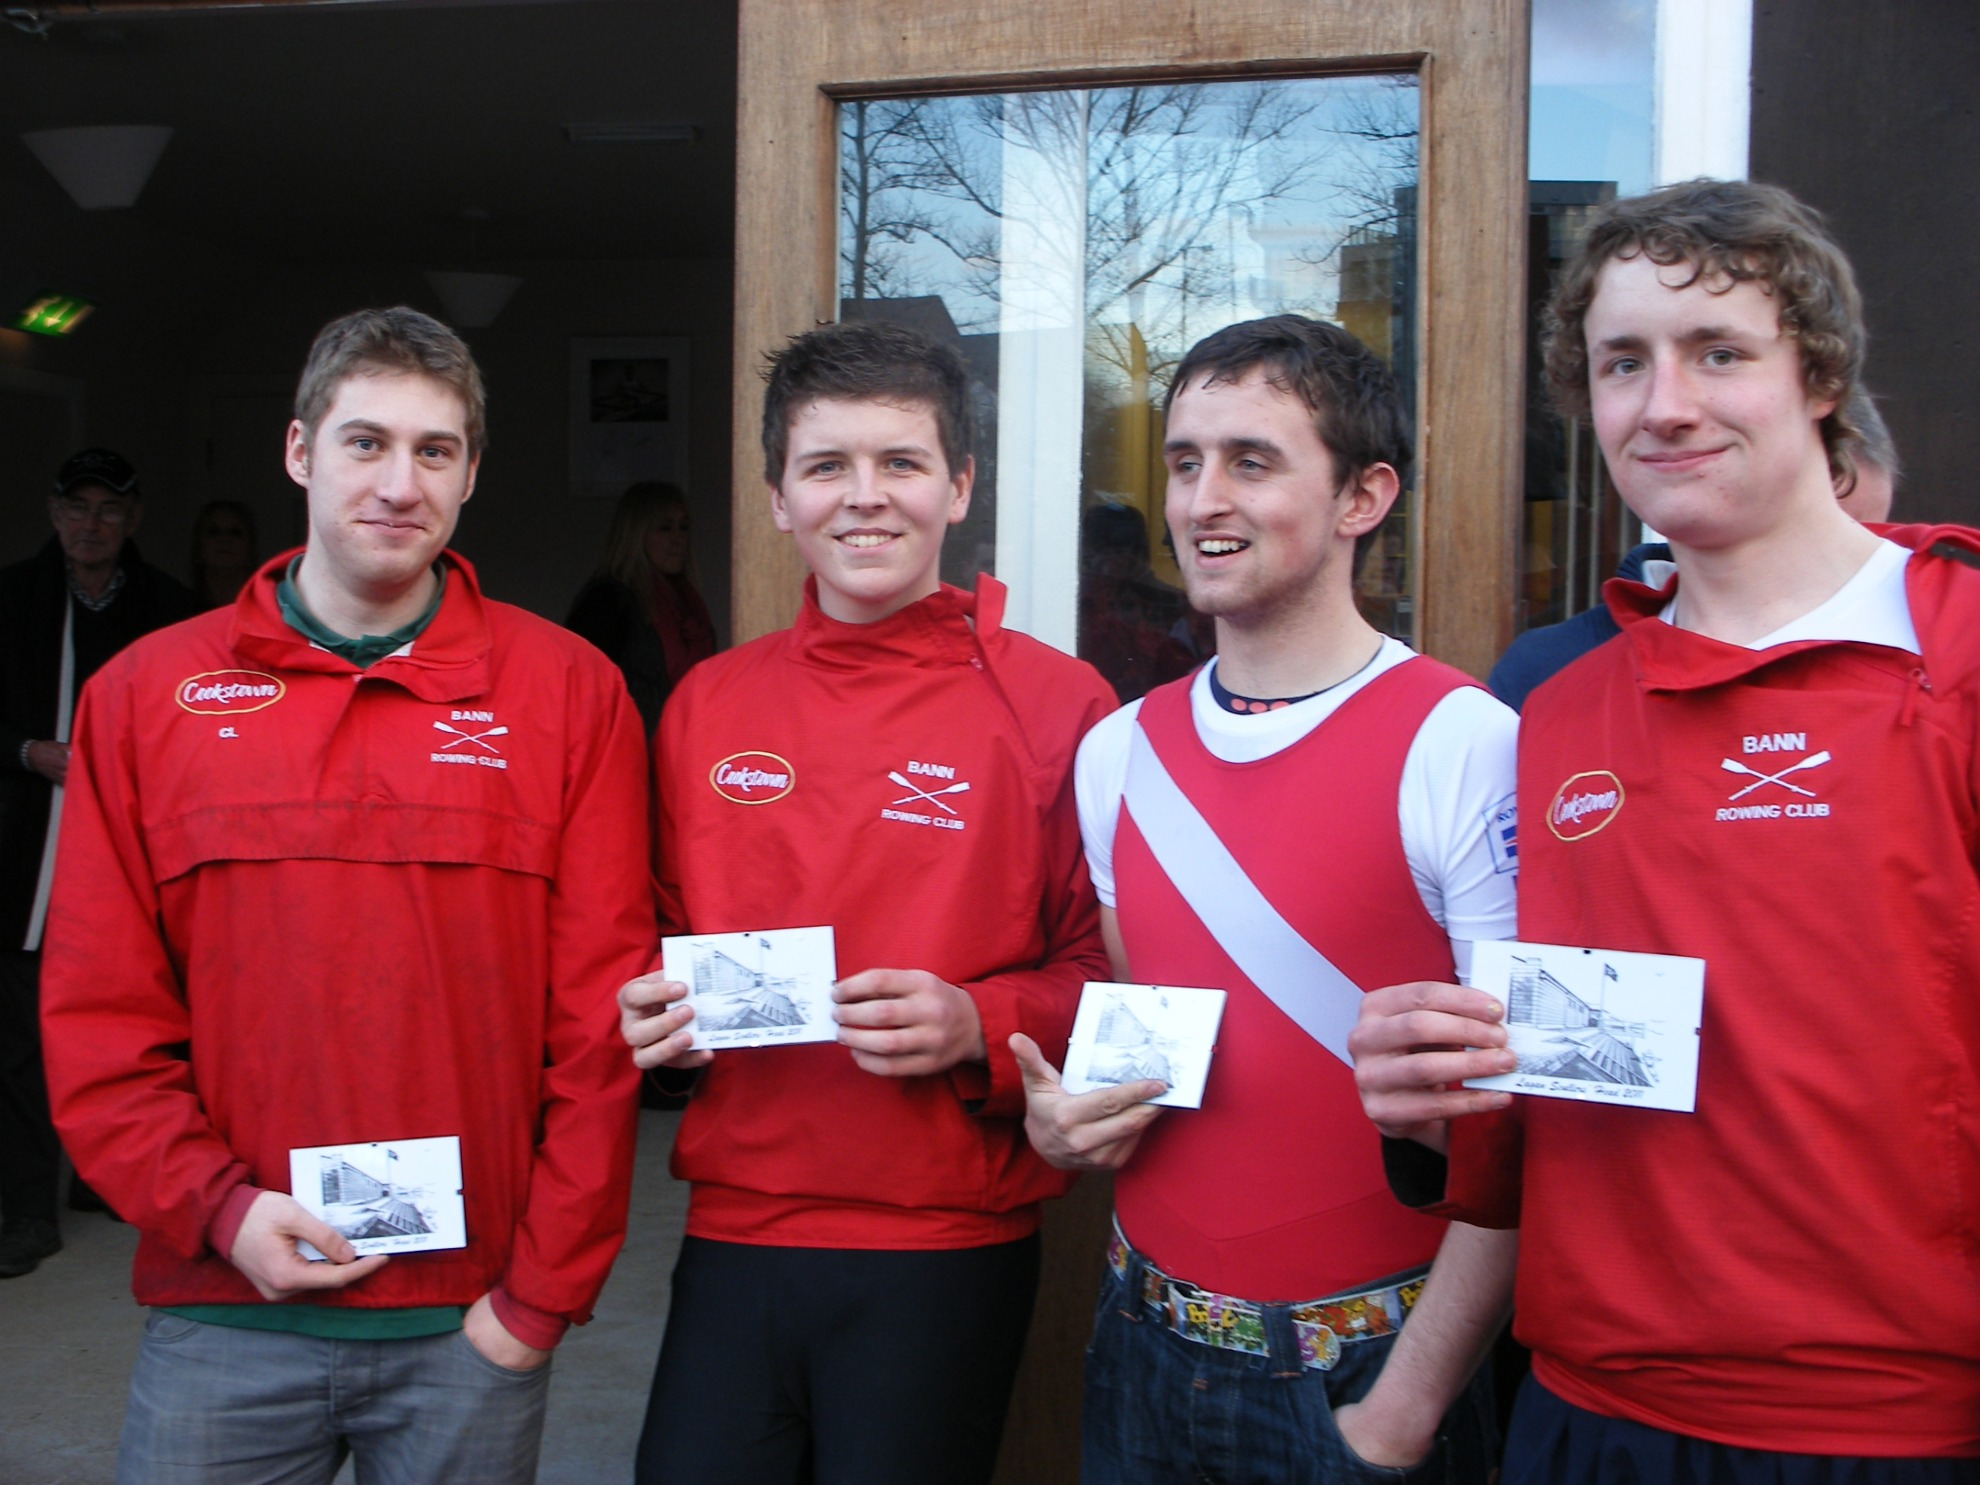 bann-win-mens-senior-quad-lagan-scullers